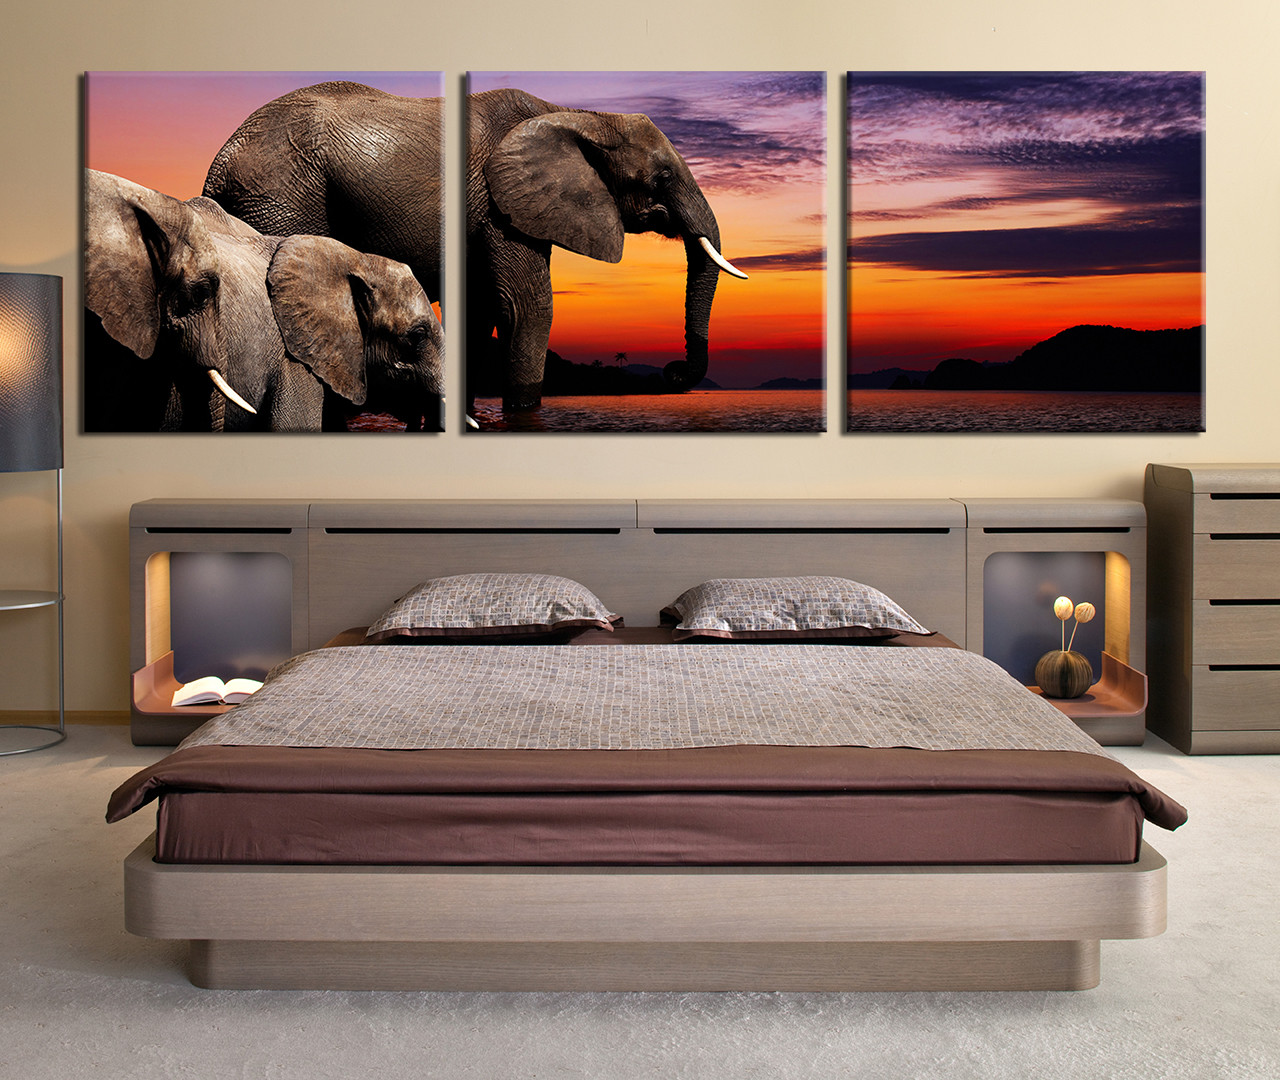 3 Piece Canvas Photography Elephant Huge Pictures Water Wall Art